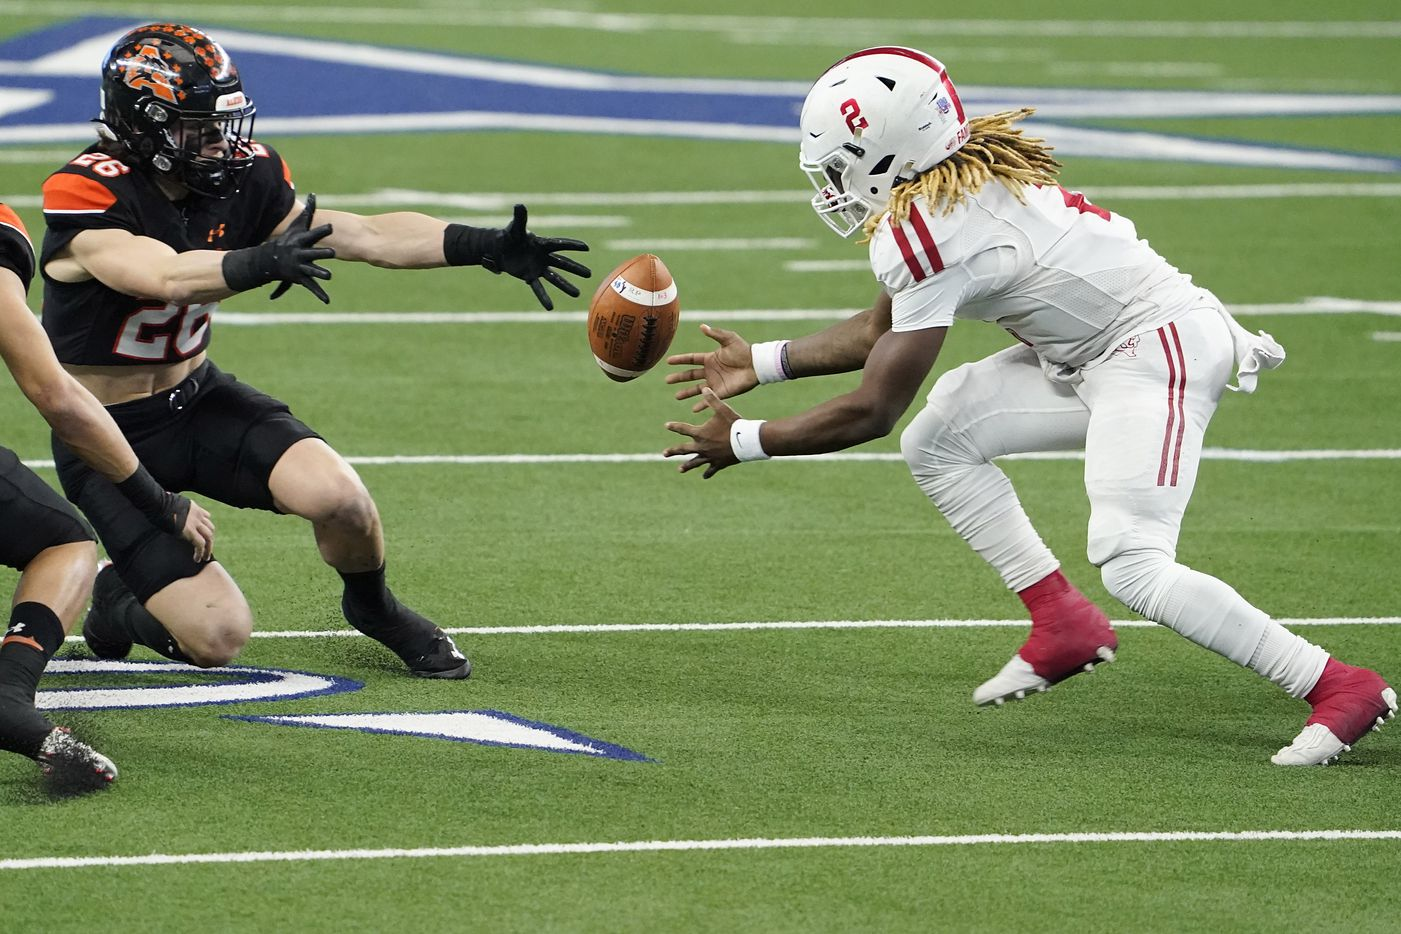 Crosby Deniquez Dunn (2) reaches to recover his own fumble against Aledo Sammy Steffe (26) during the first half of the Class 5A Division II state football championship game at AT&T Stadium on Friday, Jan. 15, 2021, in Arlington. (Smiley N. Pool/The Dallas Morning News)